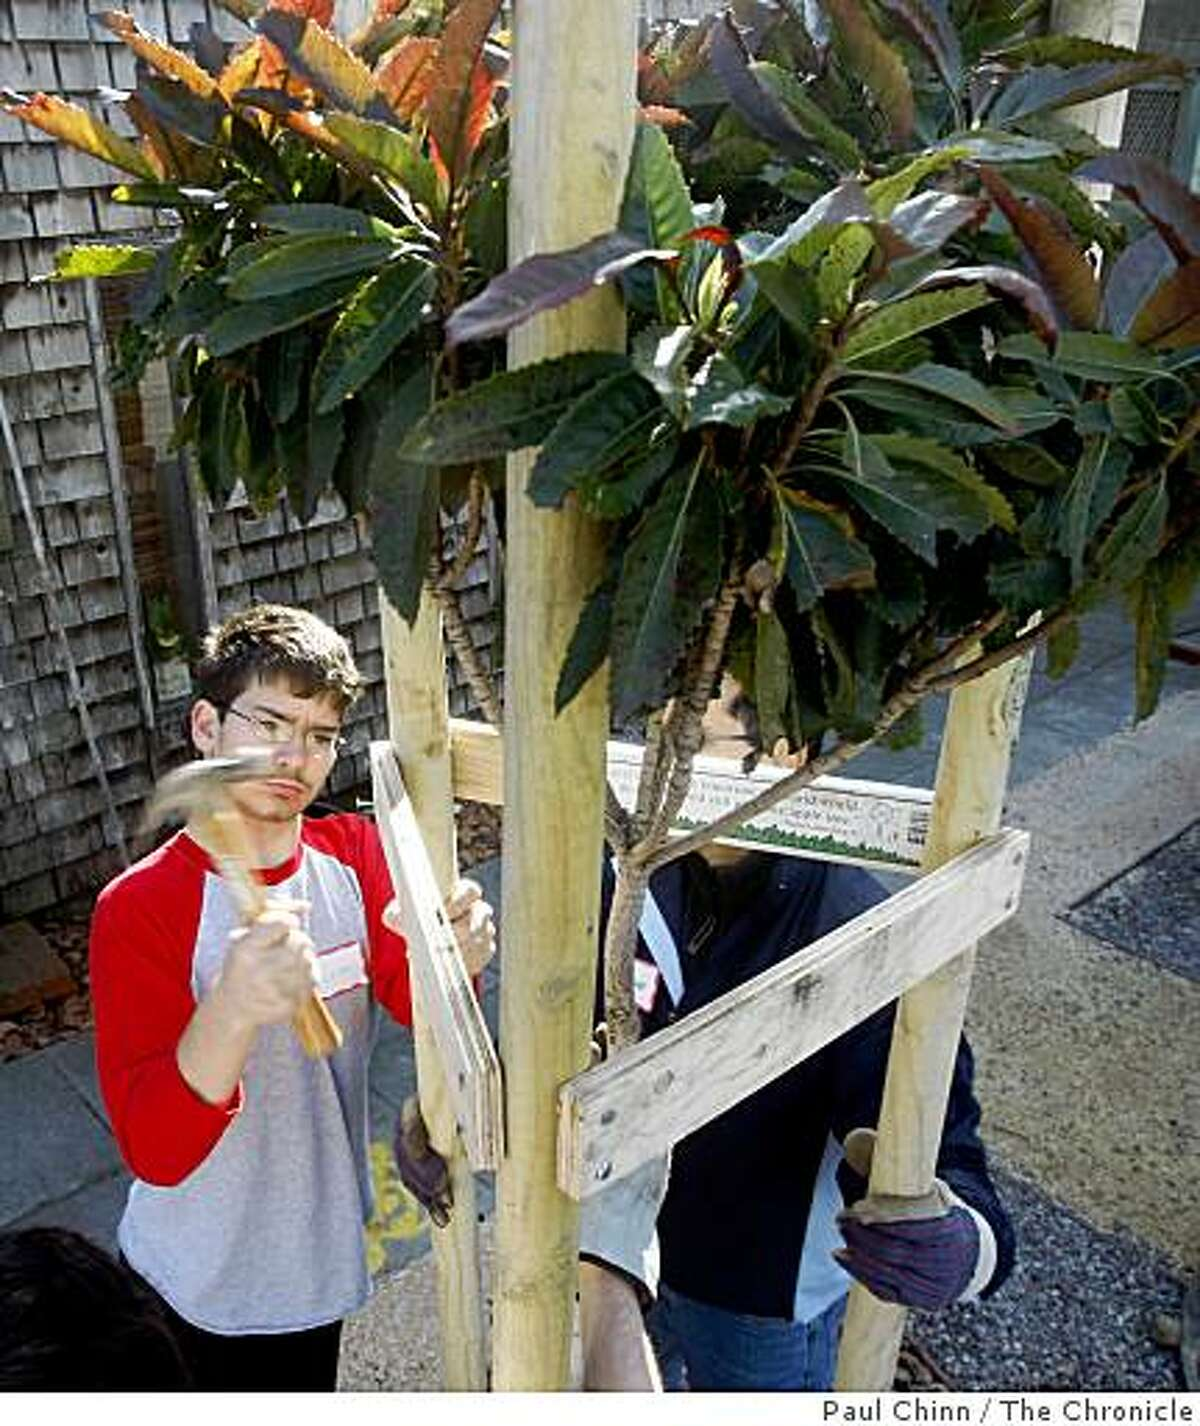 Scott McLean secured a brace when neighborhood volunteers and the Friends of the Urban Forest organization planted trees on Shrader Street in the Haight district in San Francisco, Calif. on Saturday, Feb. 16, 2008.PAUL CHINN/San Francisco Chronicle